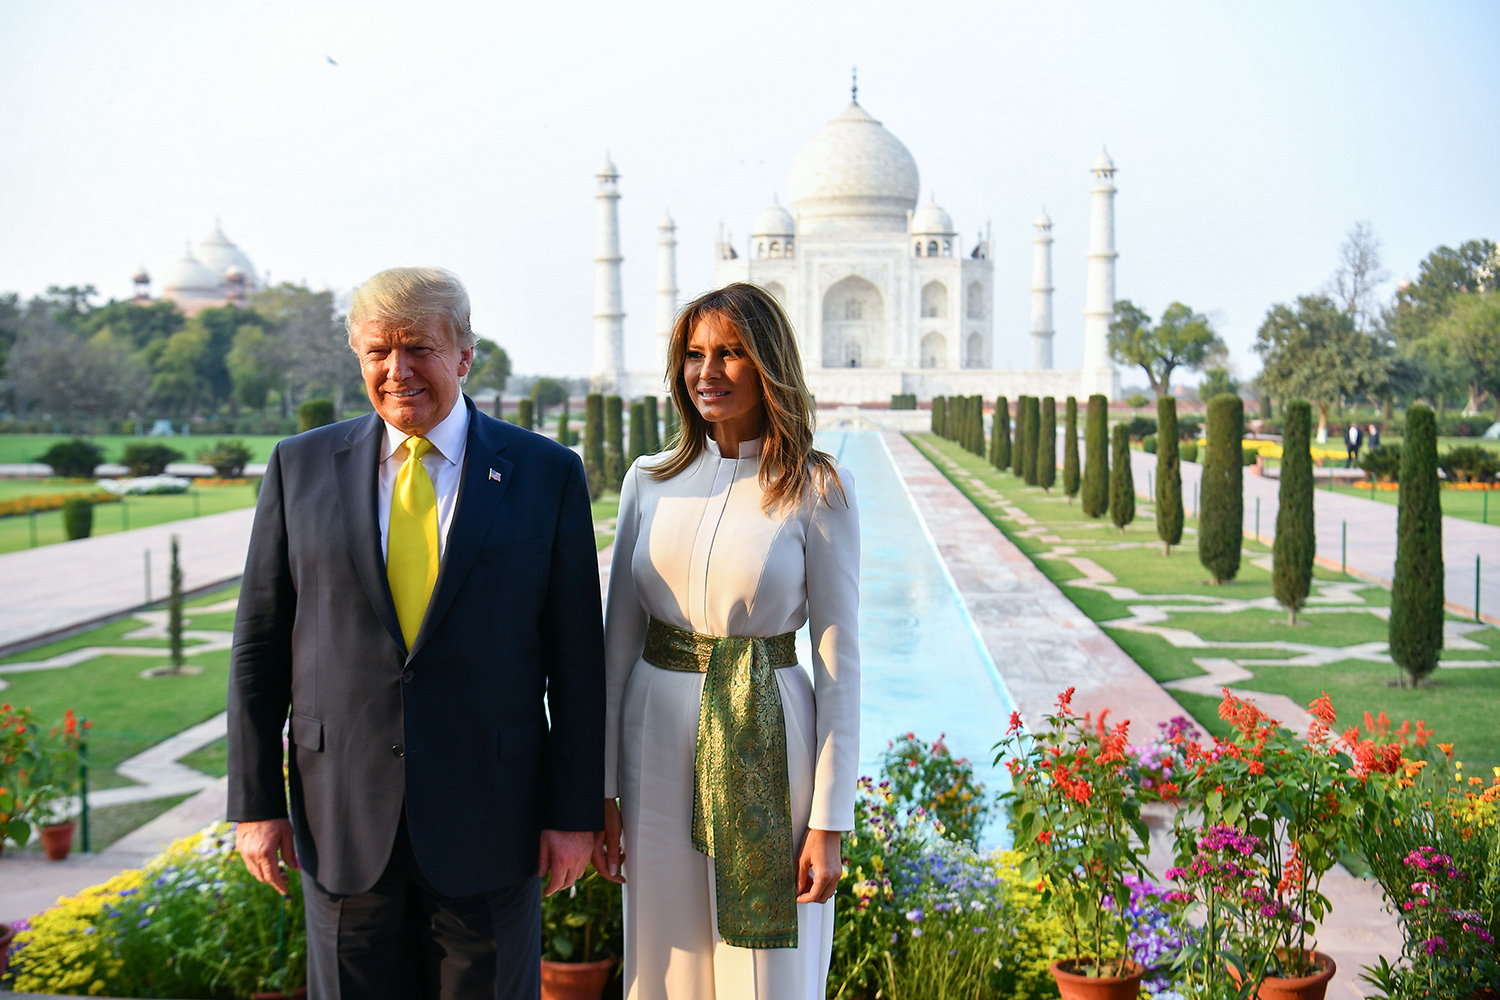 Donald Trump and First Lady Melania Trump